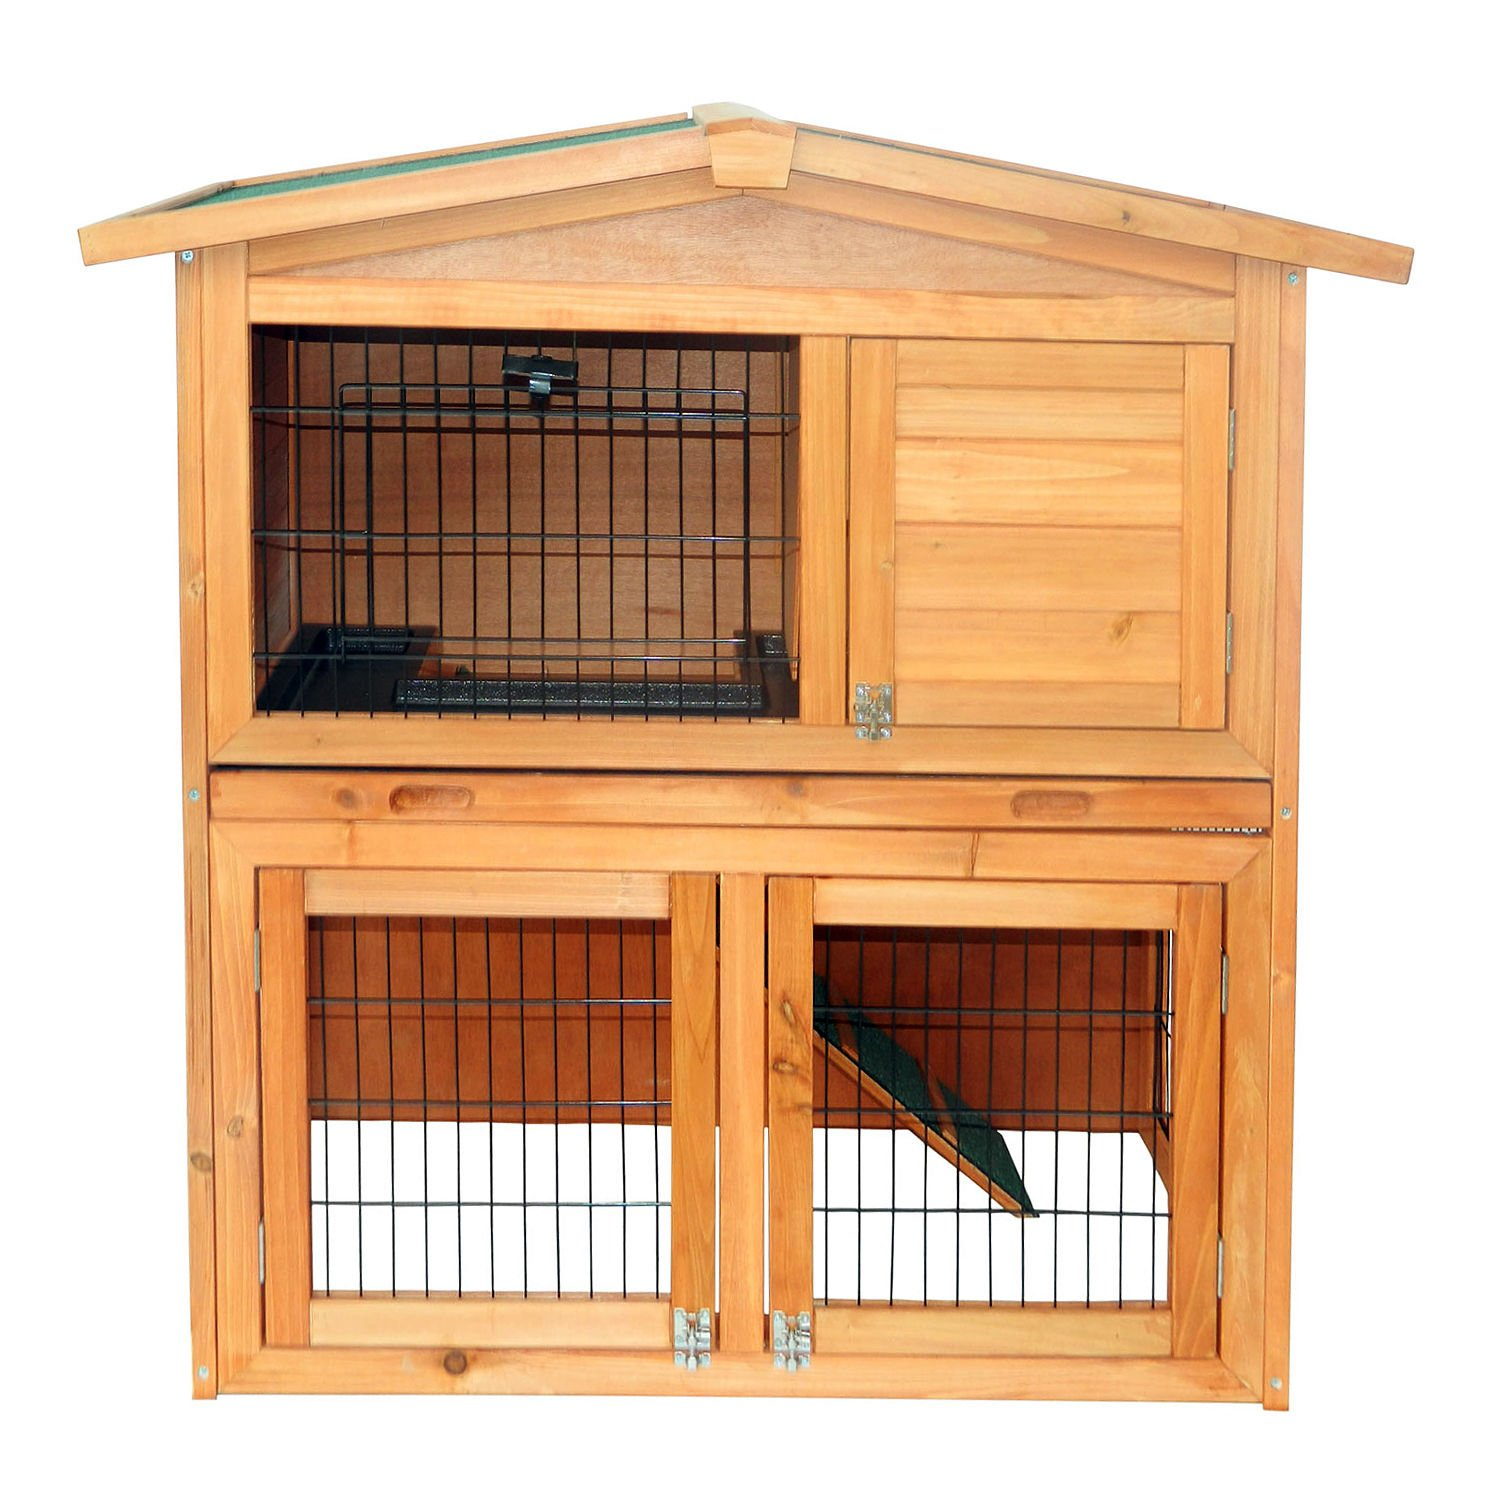 Wooden Rabbit Hutch Small Animal House Pet Cage Chicken Coop A-Frame 40''Pet Holds Cages Home - House Deals by House Deals (Image #1)